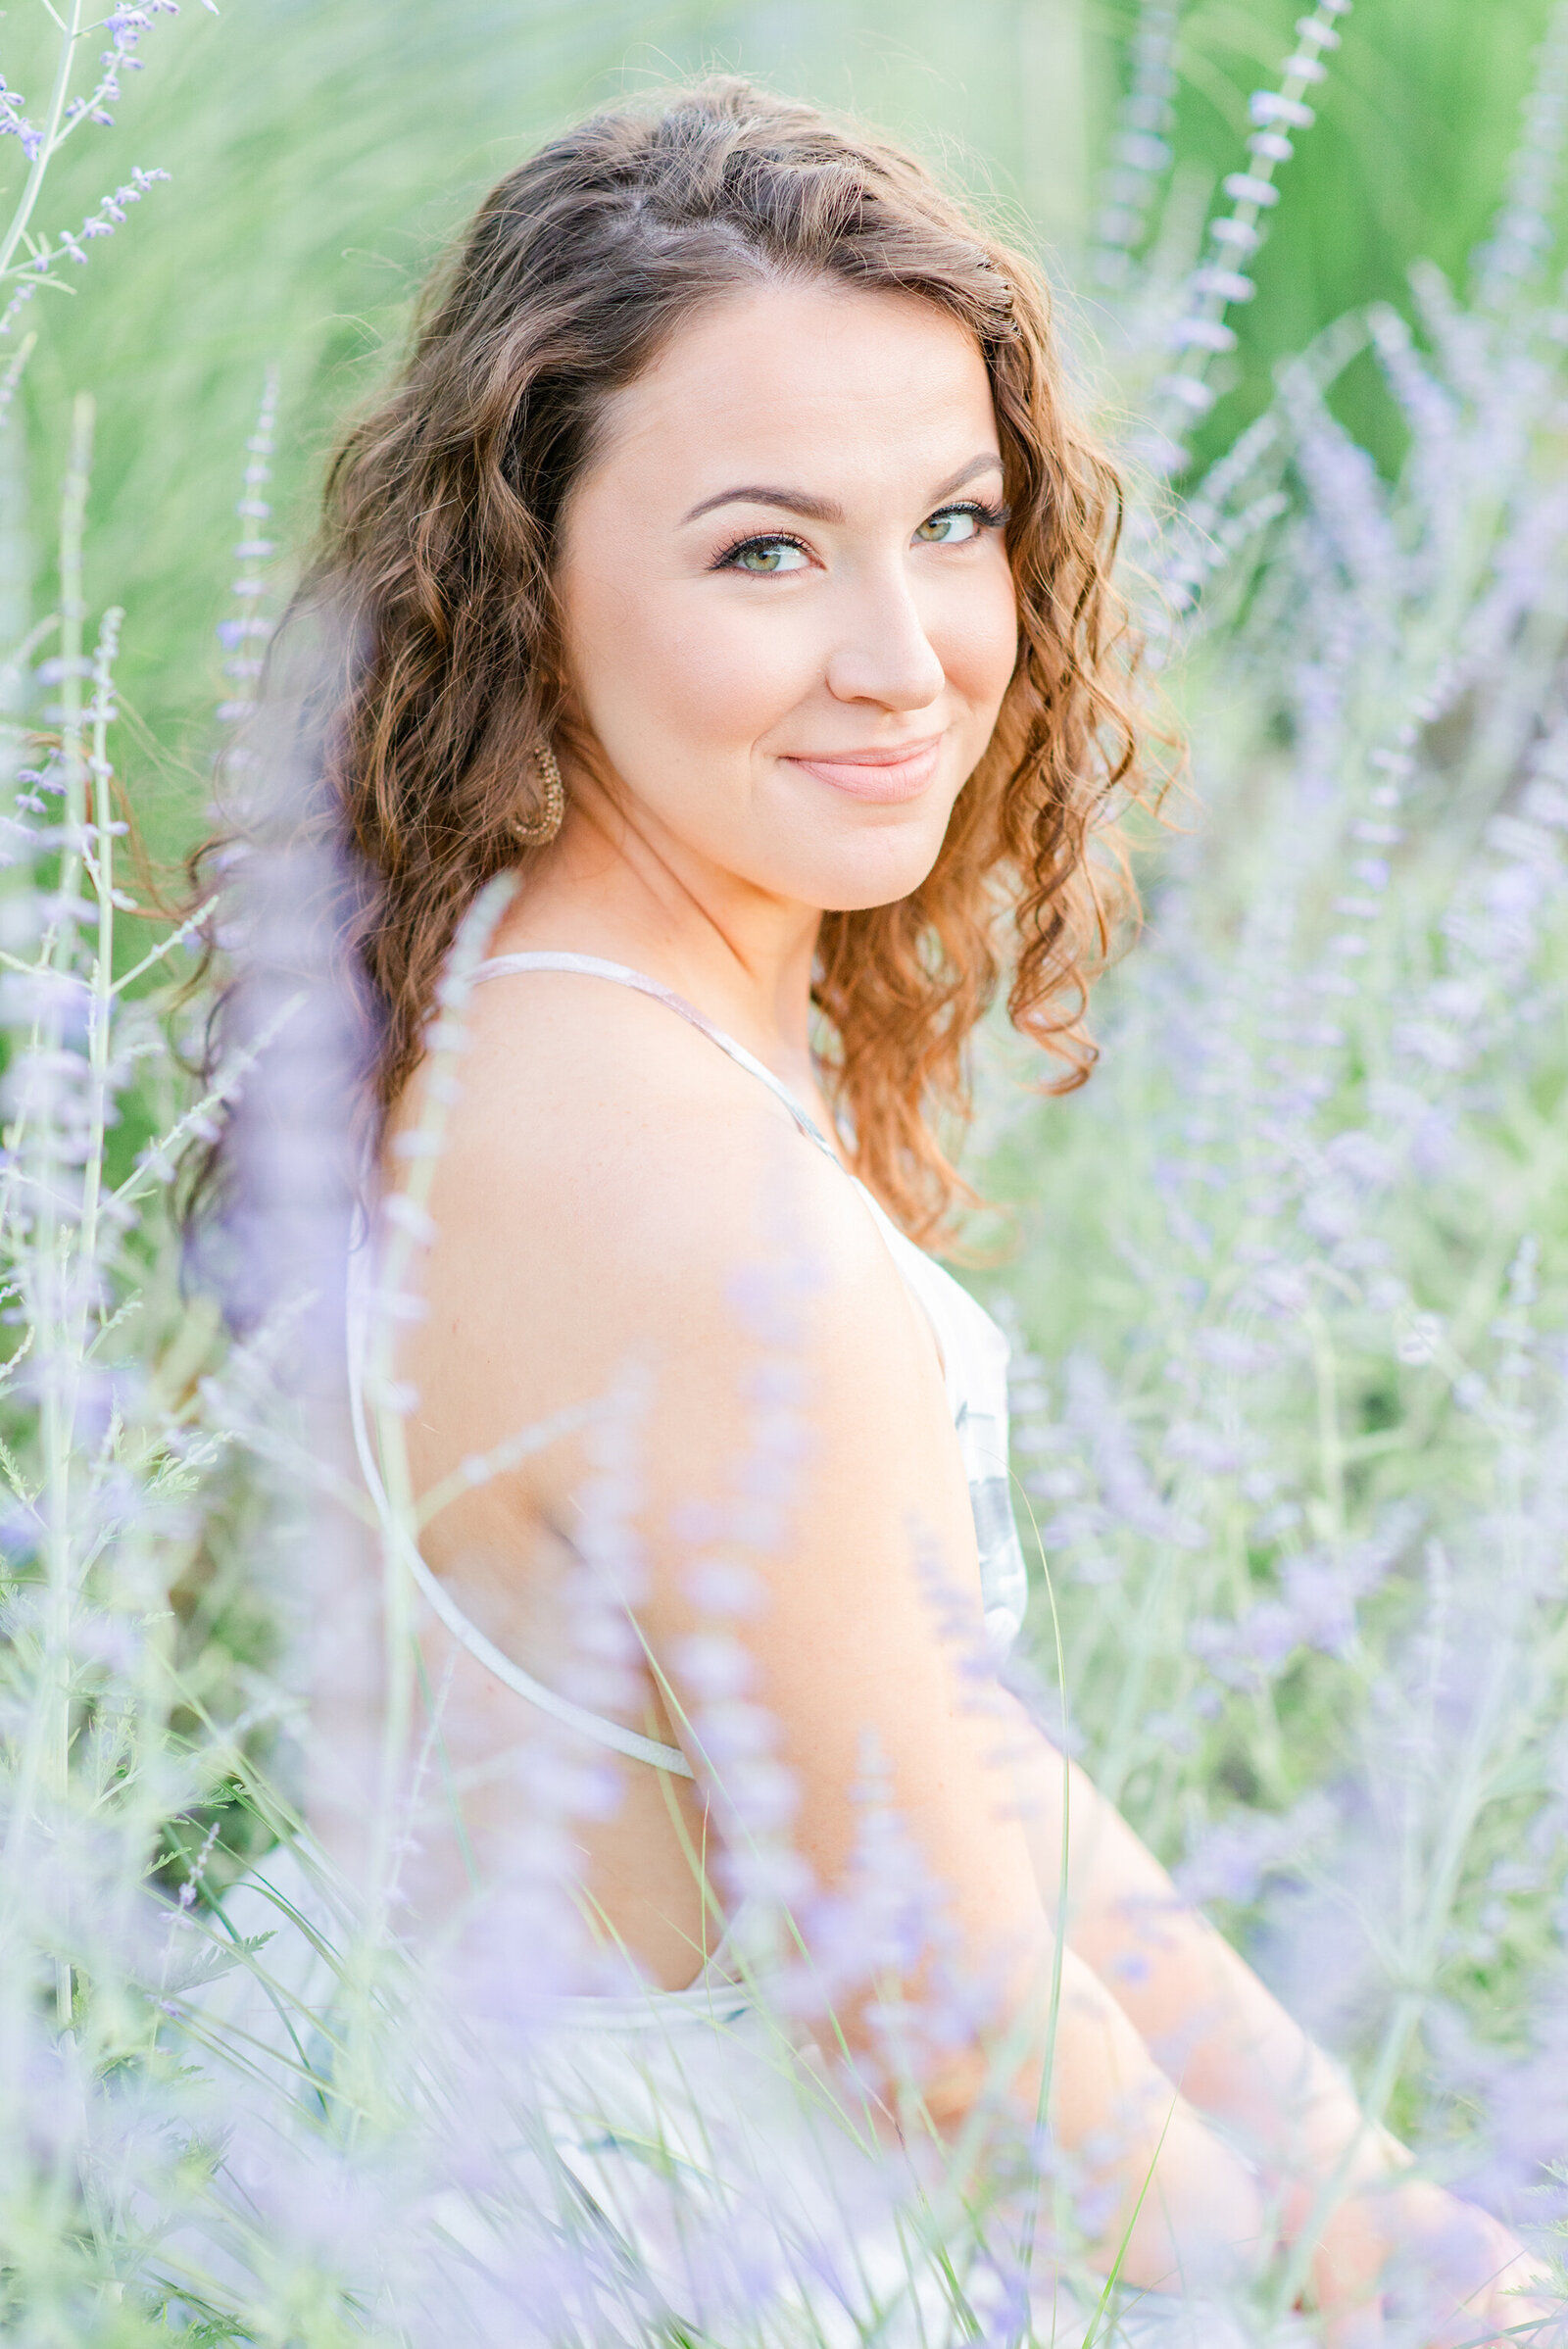 Woman looking at camera while sitting in a lavender field